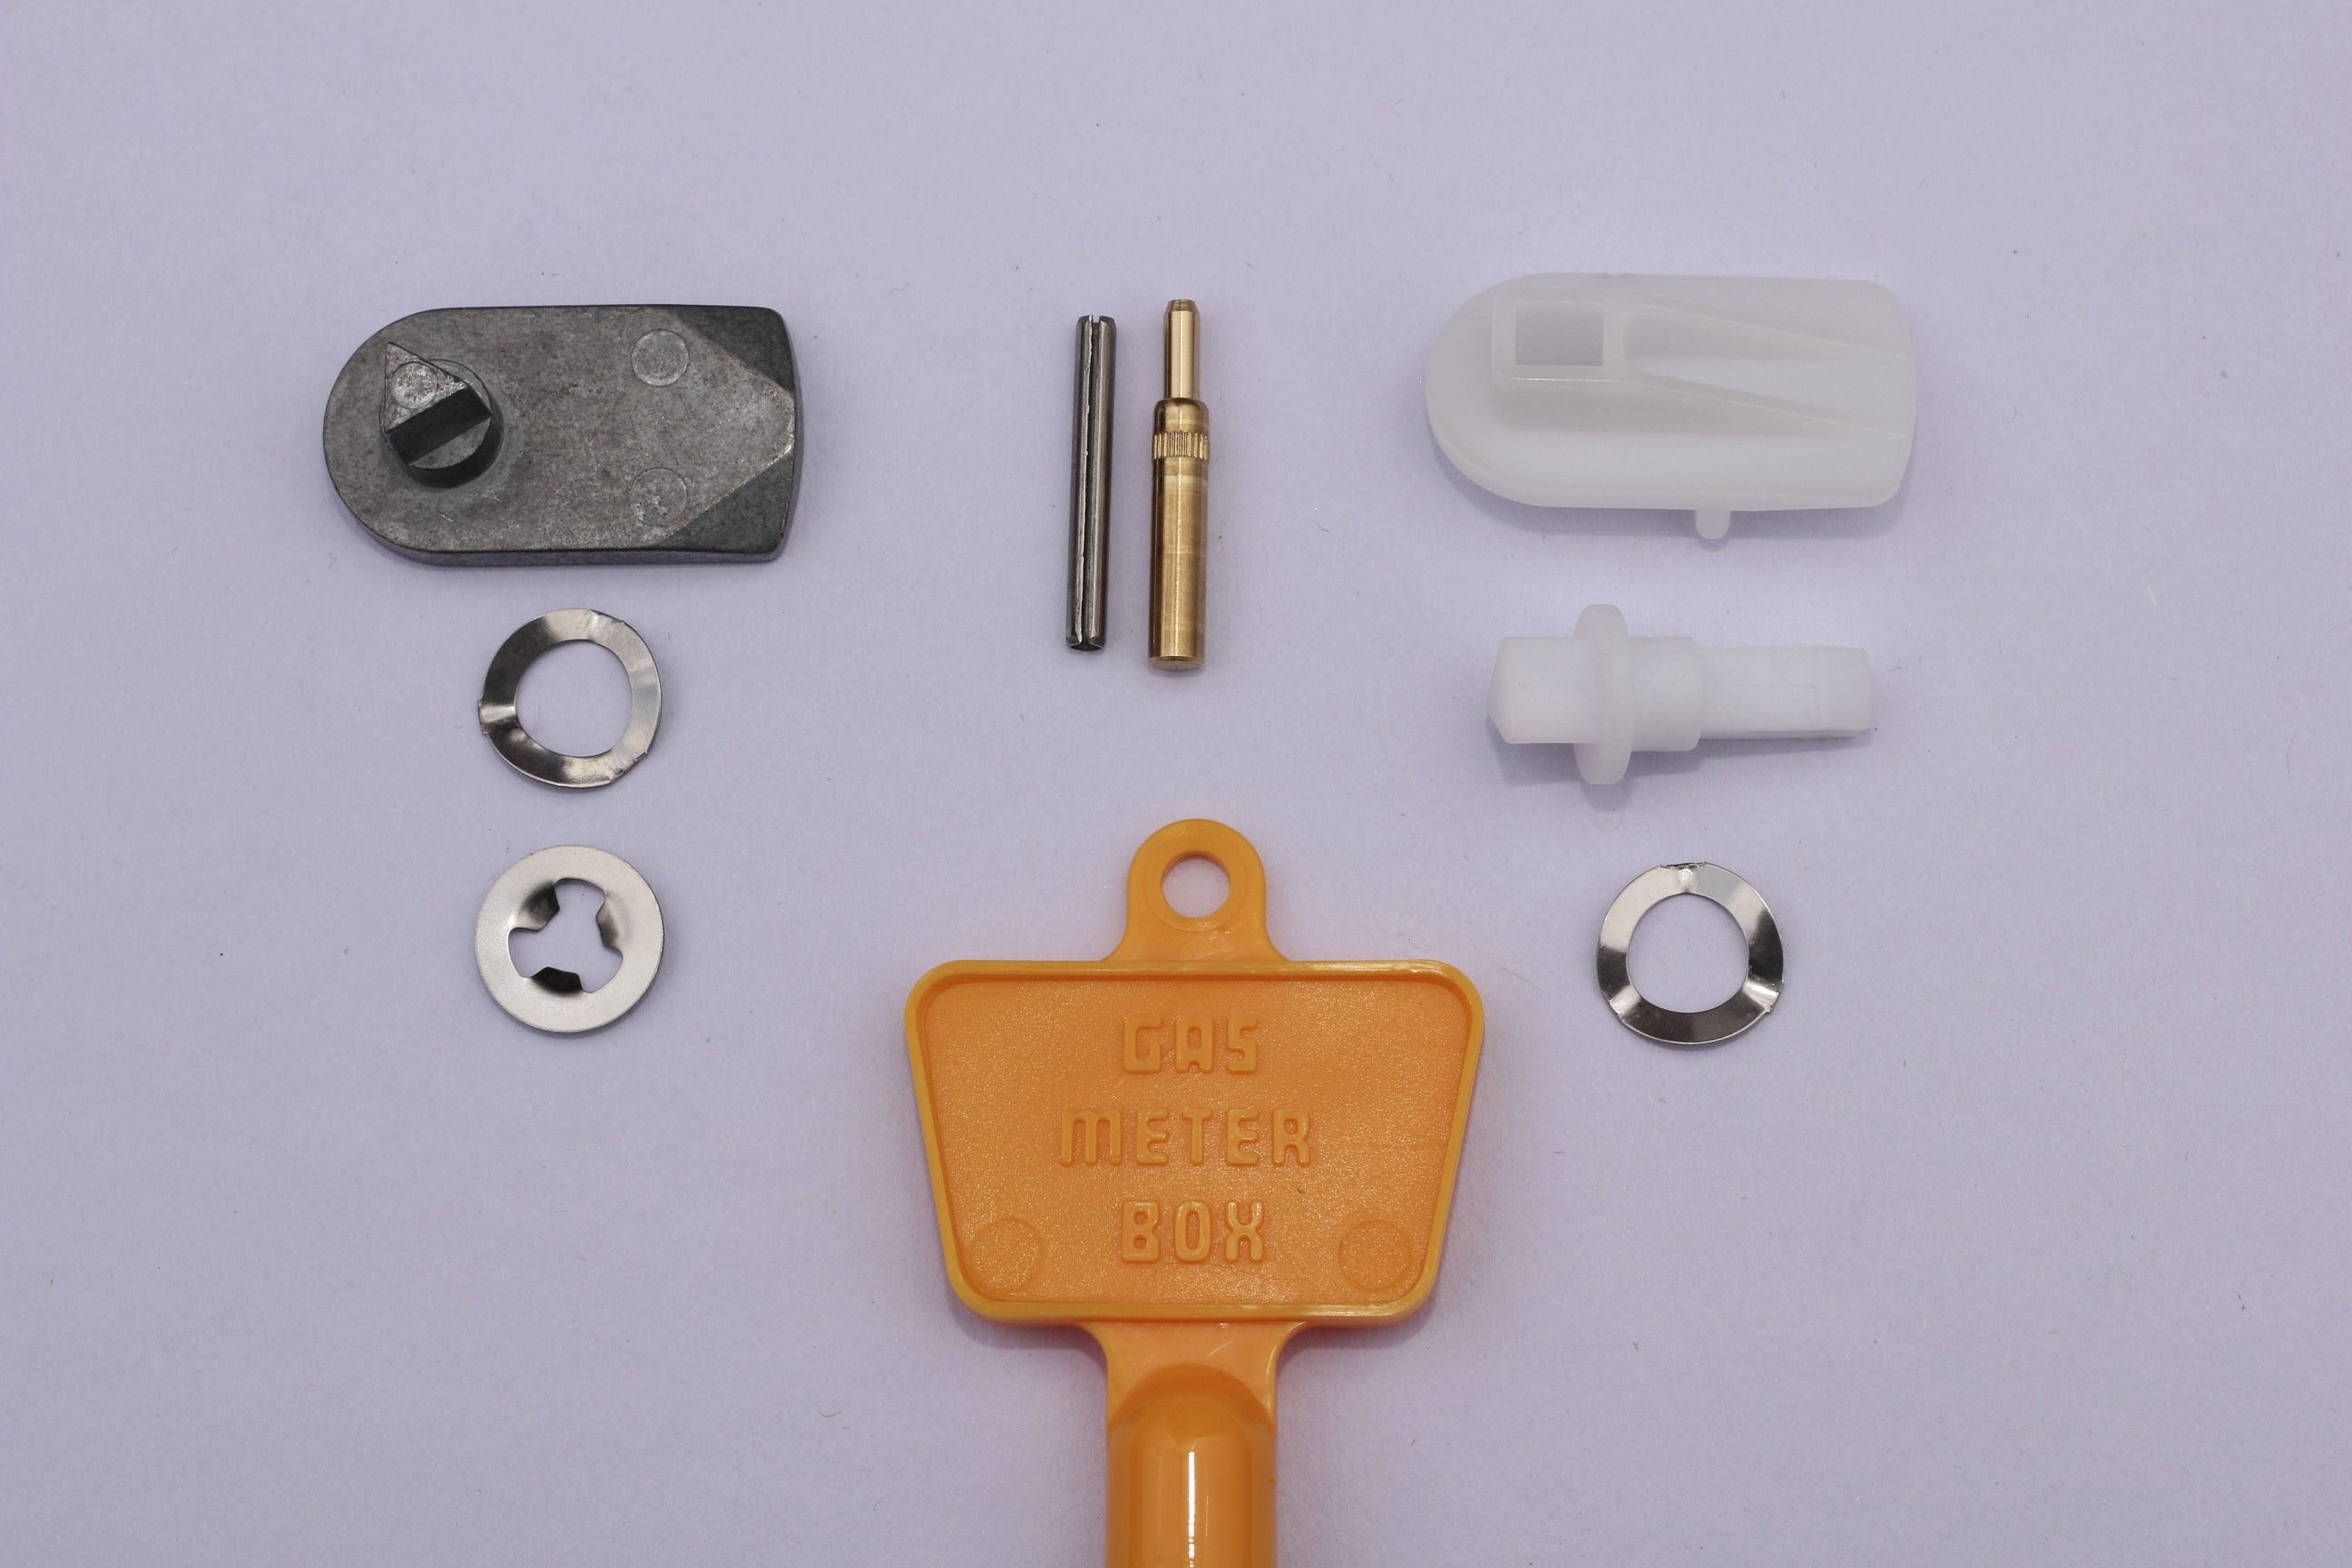 Meter Box Repair Kits :- For Gas or Electric Meter boxes